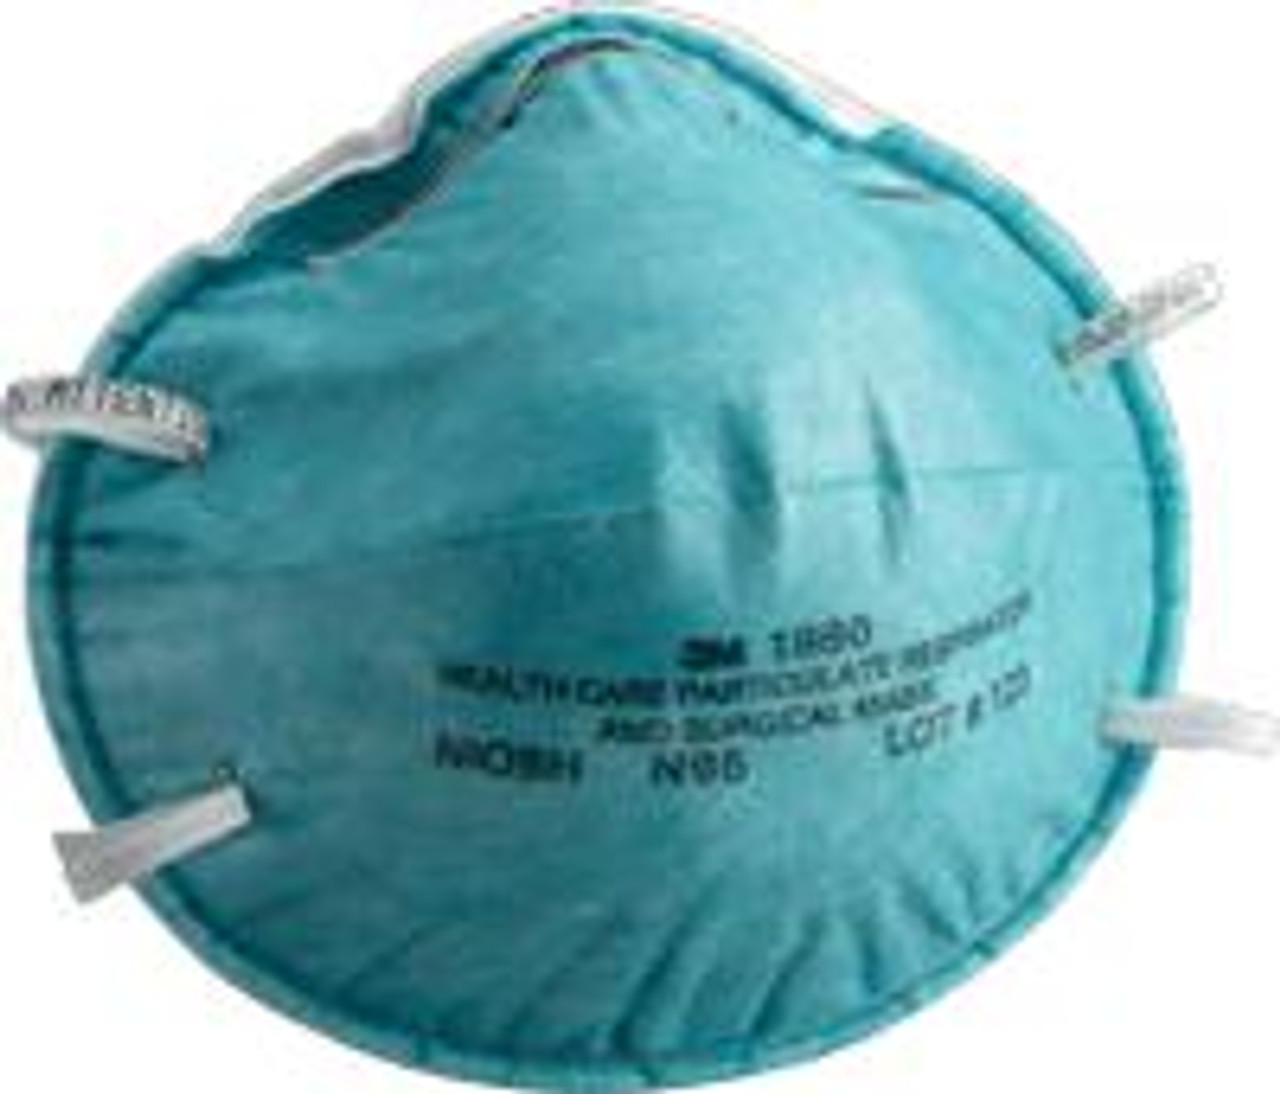 Health Regular Particulate N95 Bx 20 Surgical Teal And Cone Care Bx 3m Mask Respirator 1860 Molded